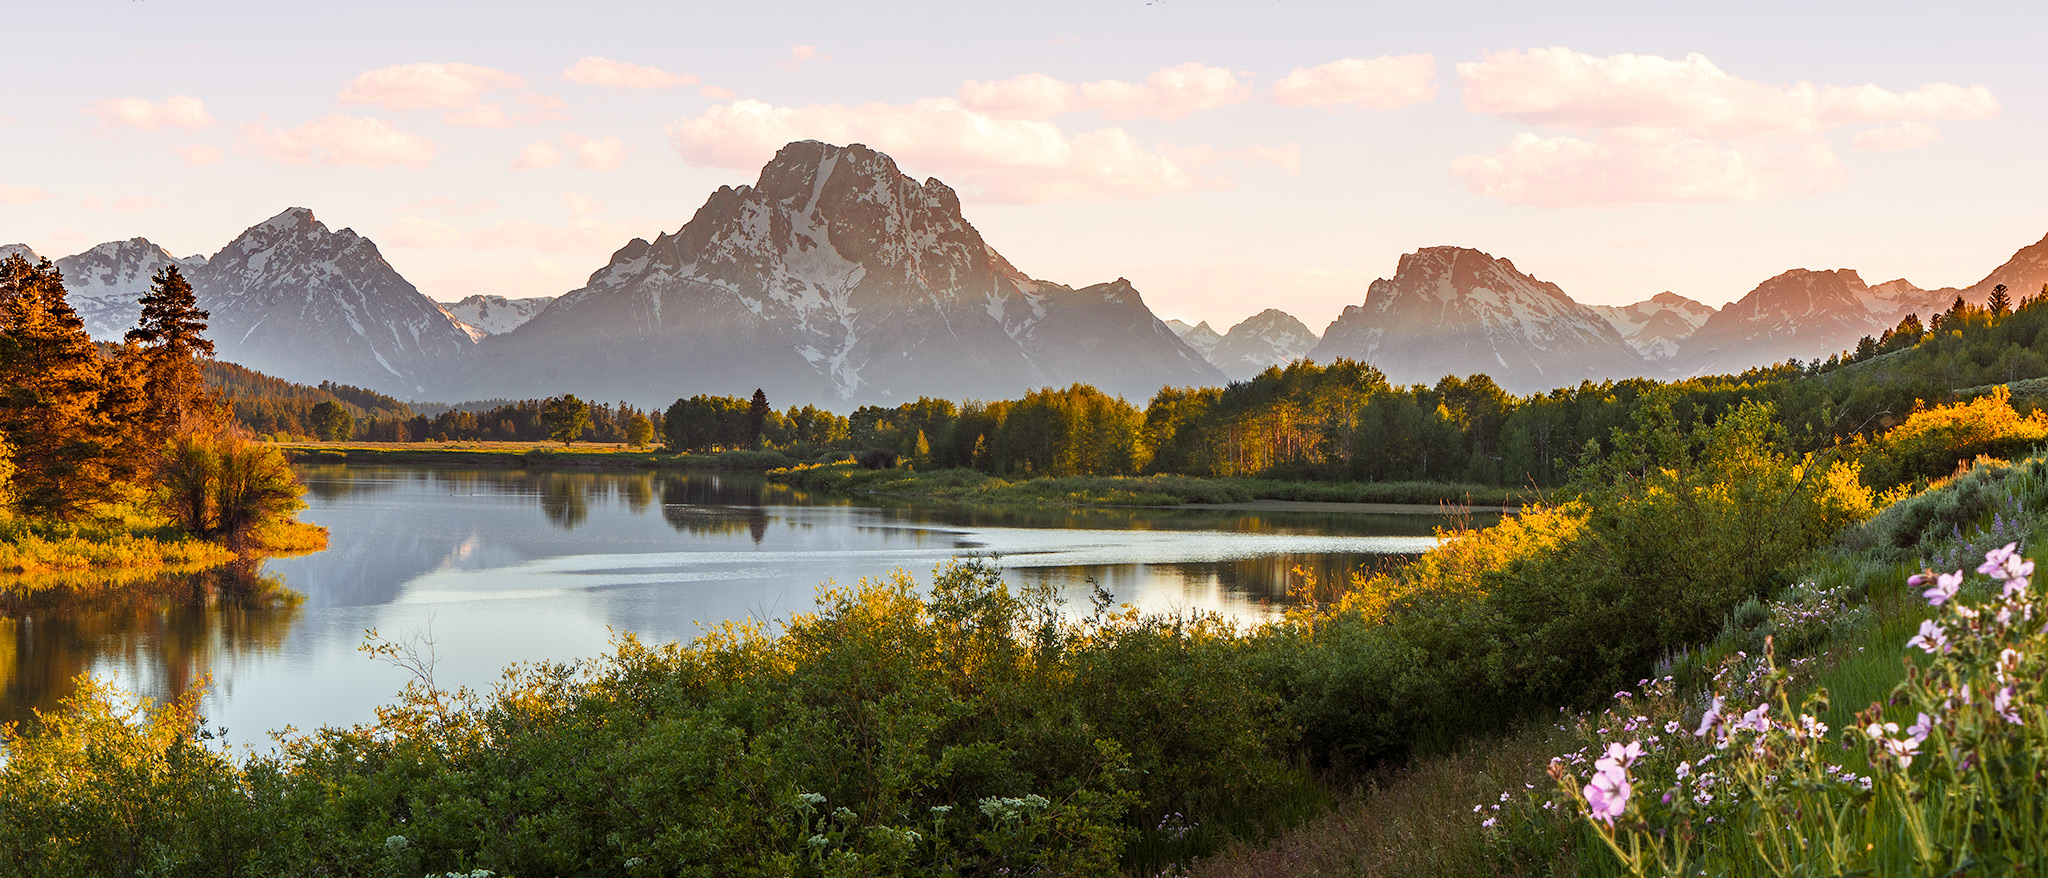 Sunset at Oxbul, Grand Teton National Park.